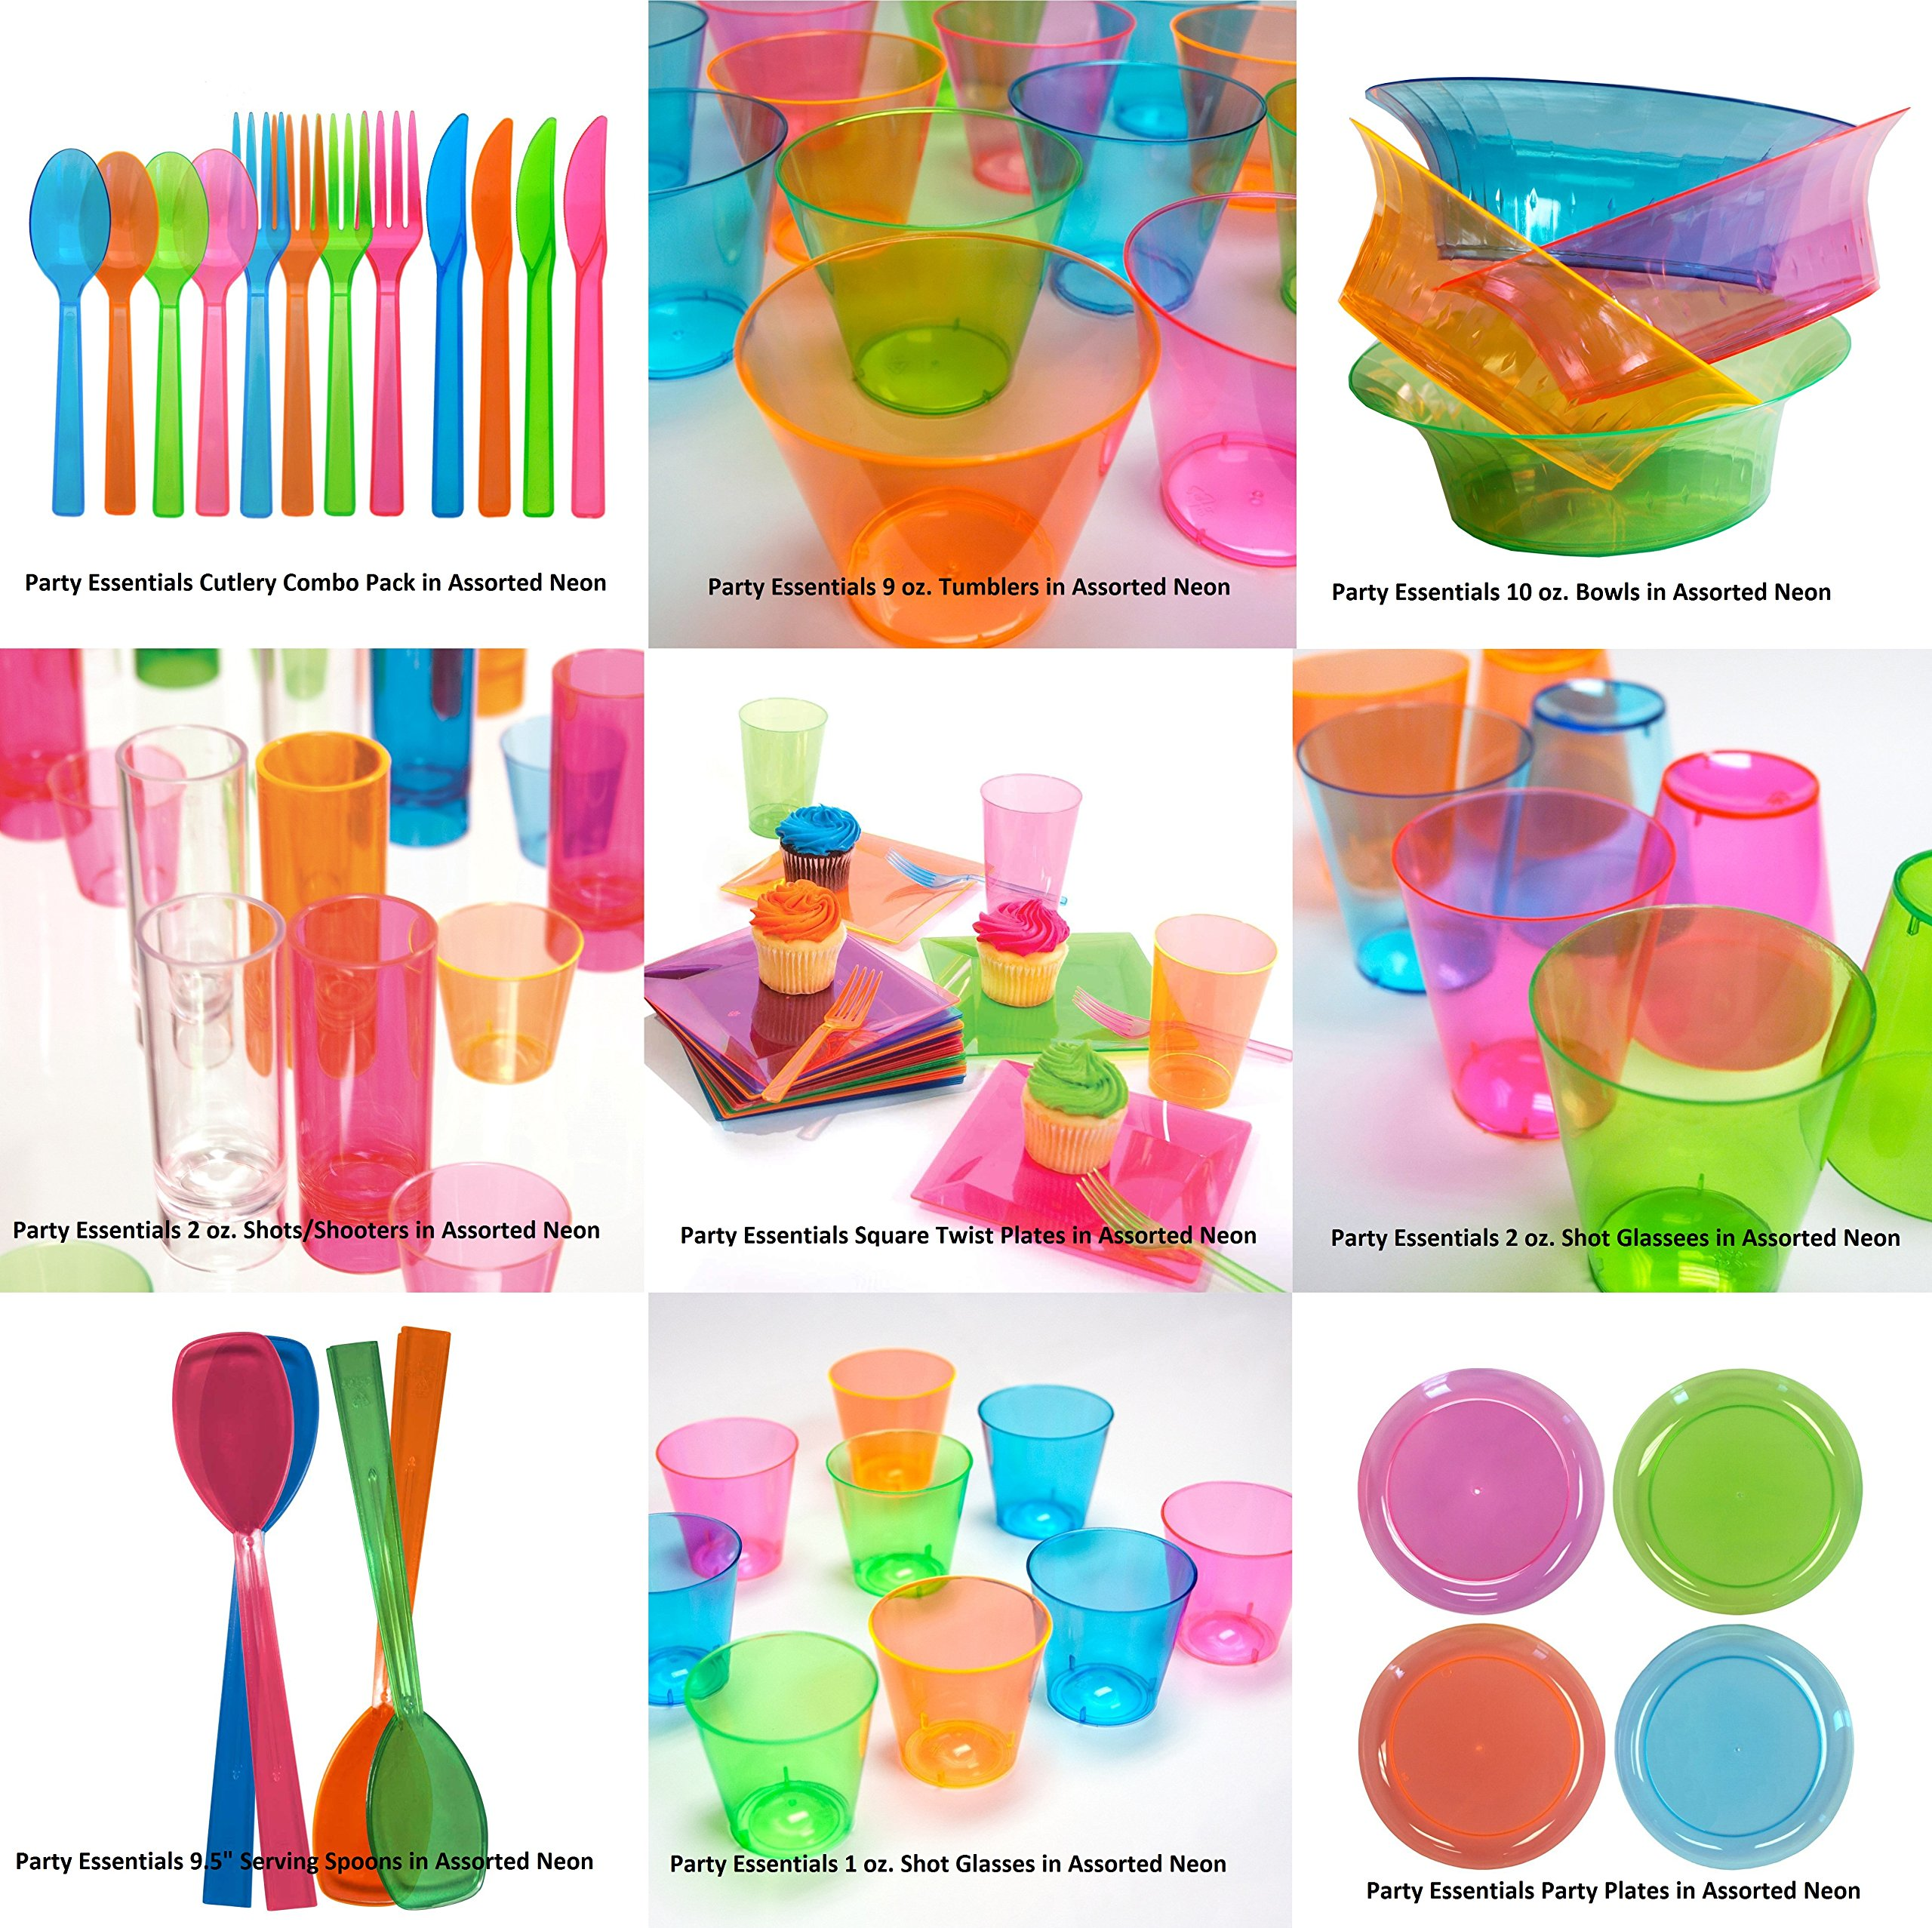 Party Essentials Hard Plastic 9-Ounce Party Cups/Old Fashioned Tumblers, 200-Count, Assorted Neon by Party Essentials (Image #4)